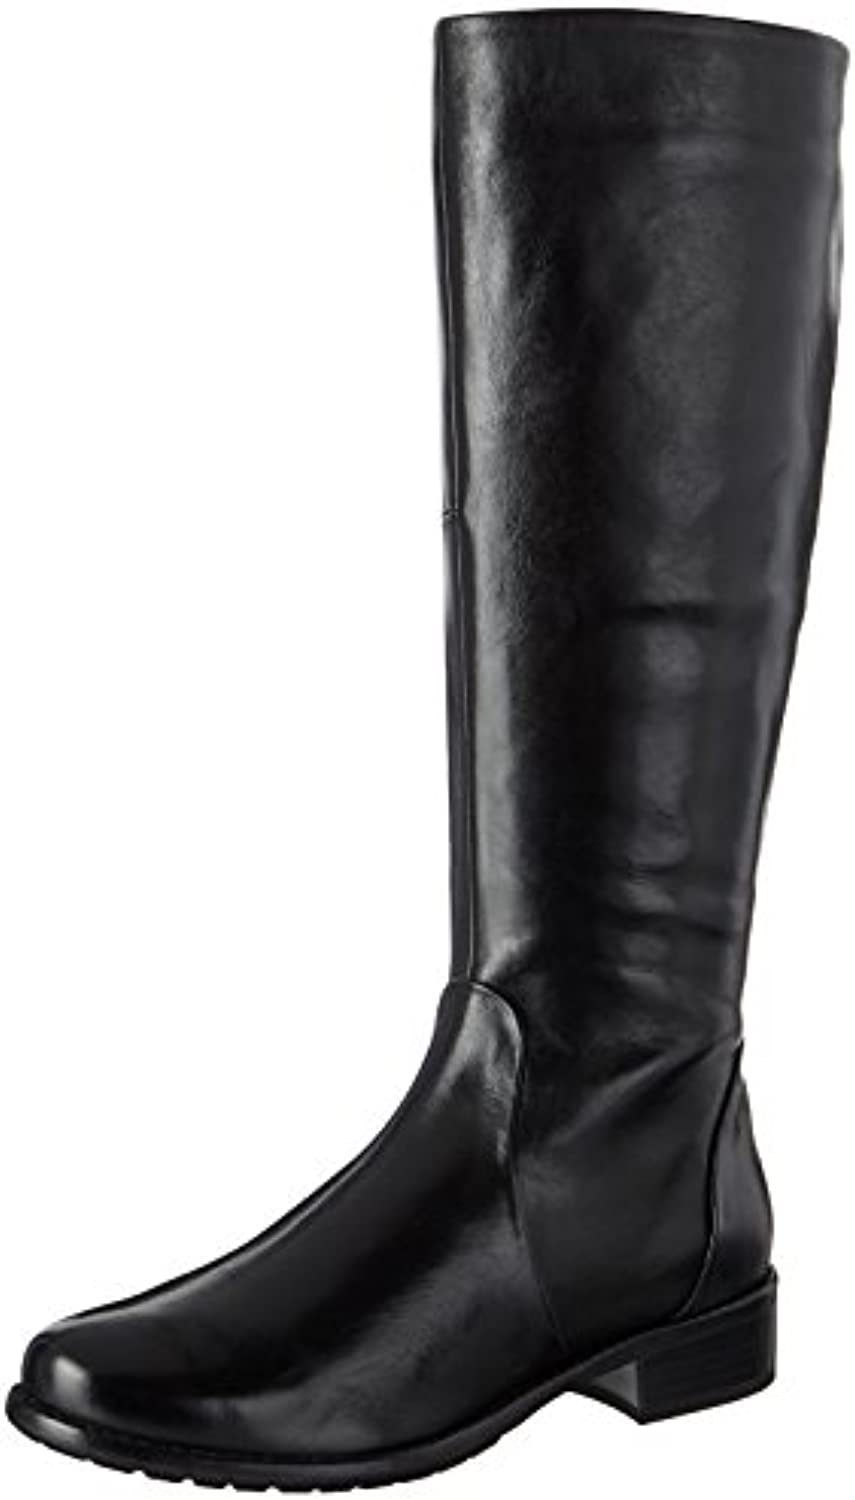 Gerry Weber Calla 05 - Botines Mujer